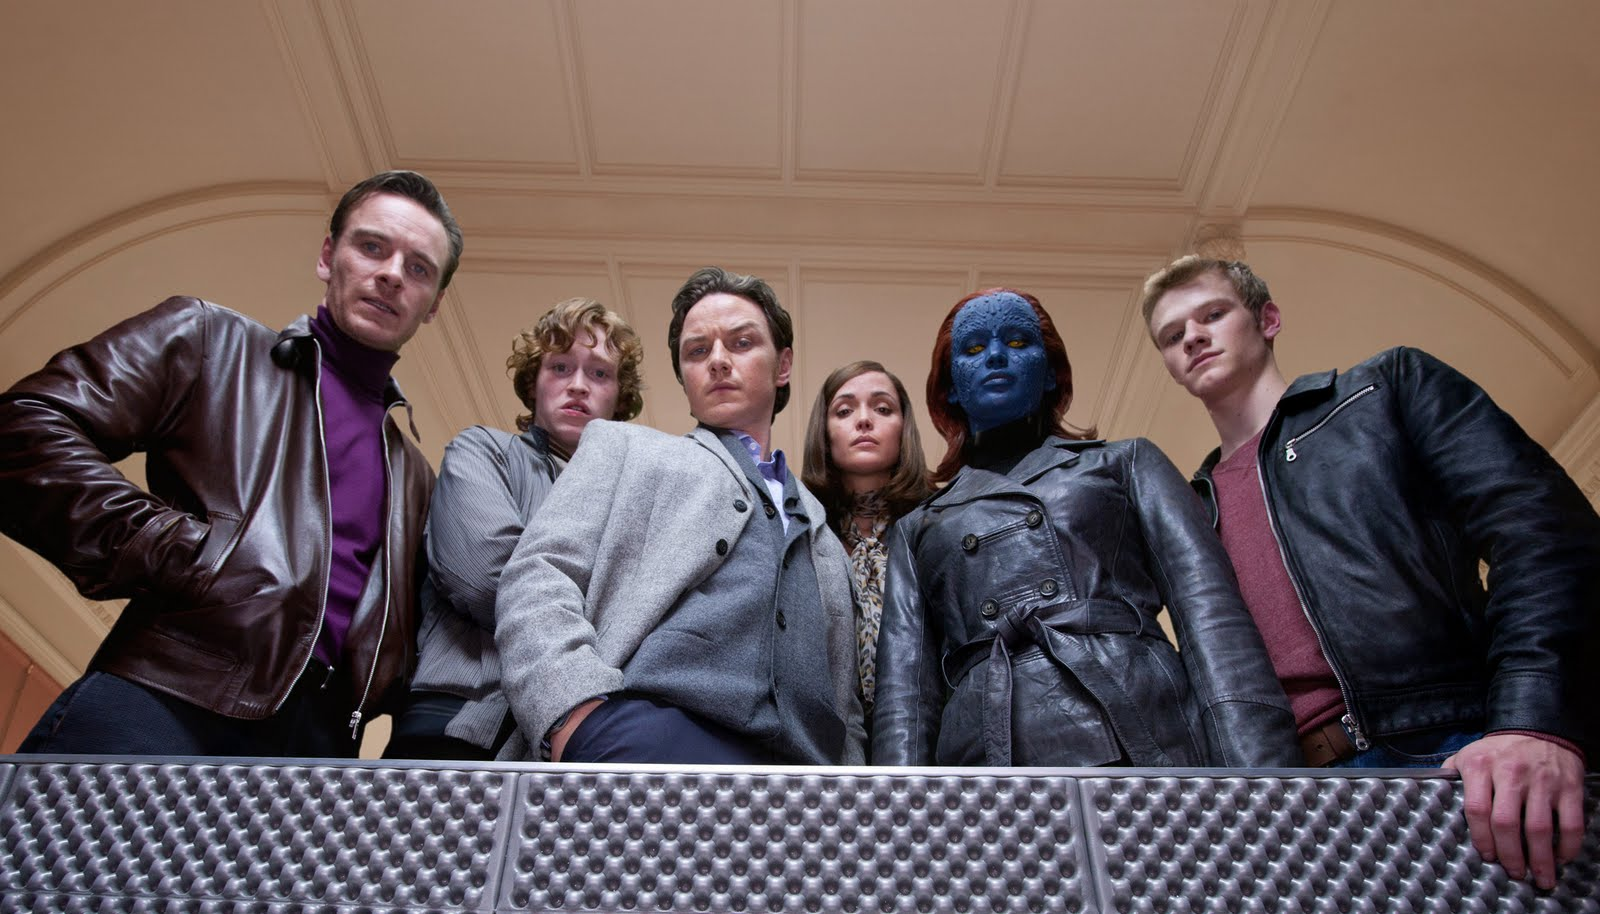 X-Men: First Class refracts to